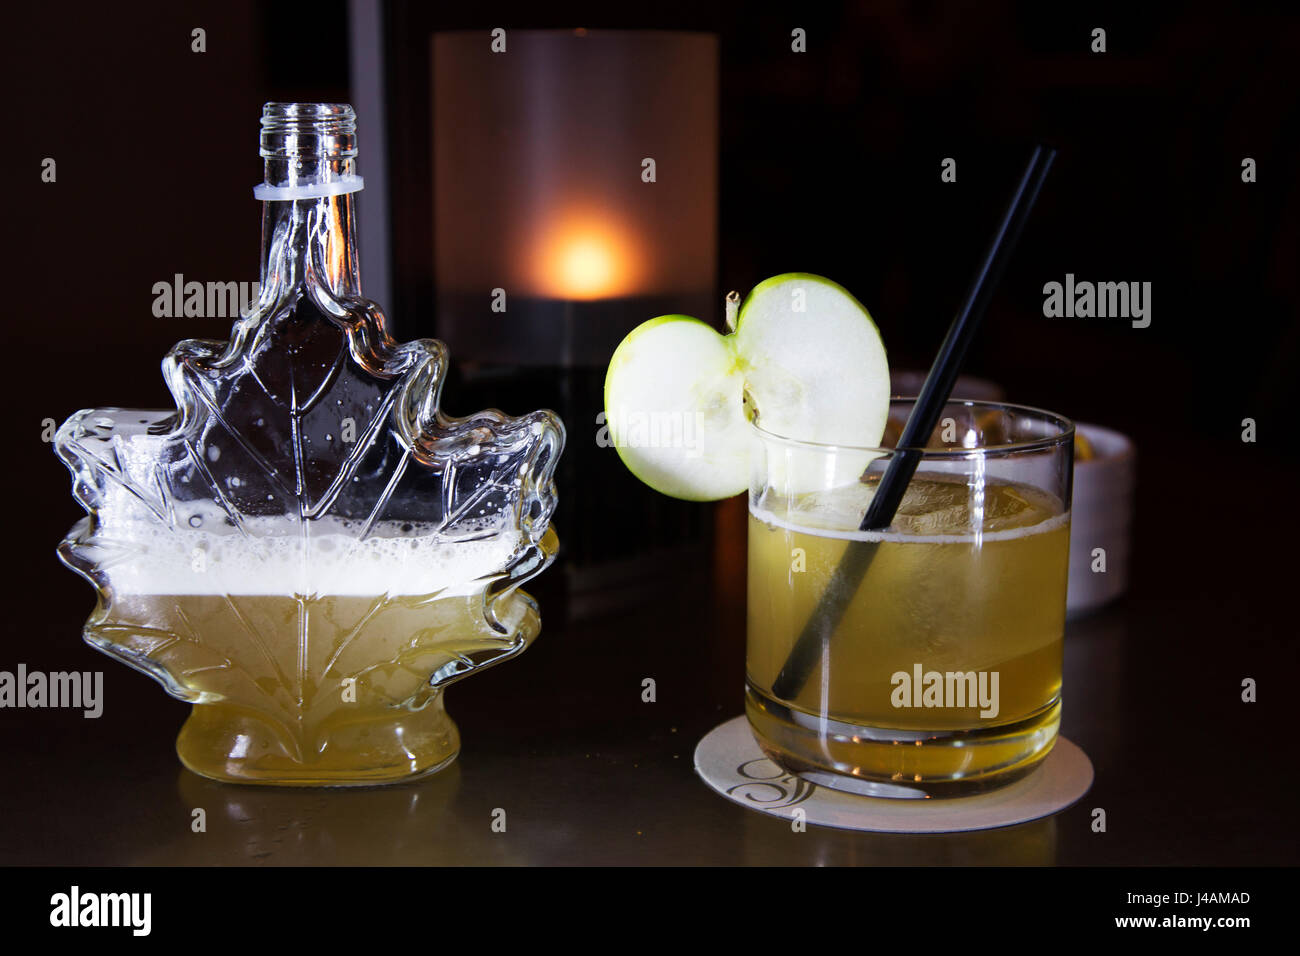 A whisky sour cocktail served with maple syrup at the Fairmont Hotel in Vancouver, Canada. - Stock Image